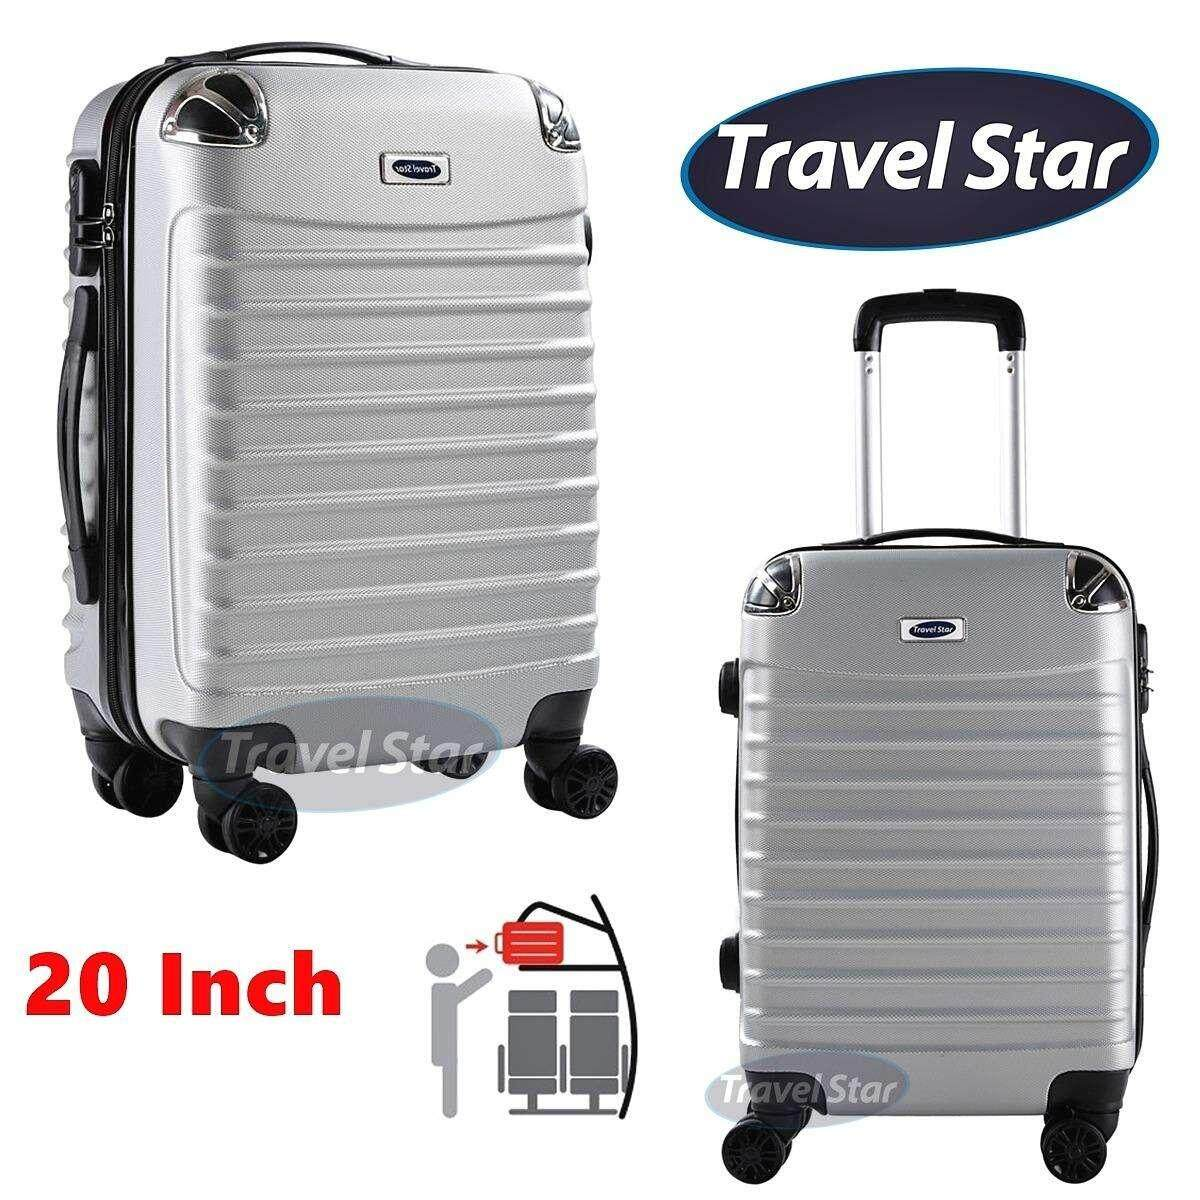 Travel Star 108 20 Inch Candy Colour Hard Case Luggage Bagasi (Free Passport Holder)